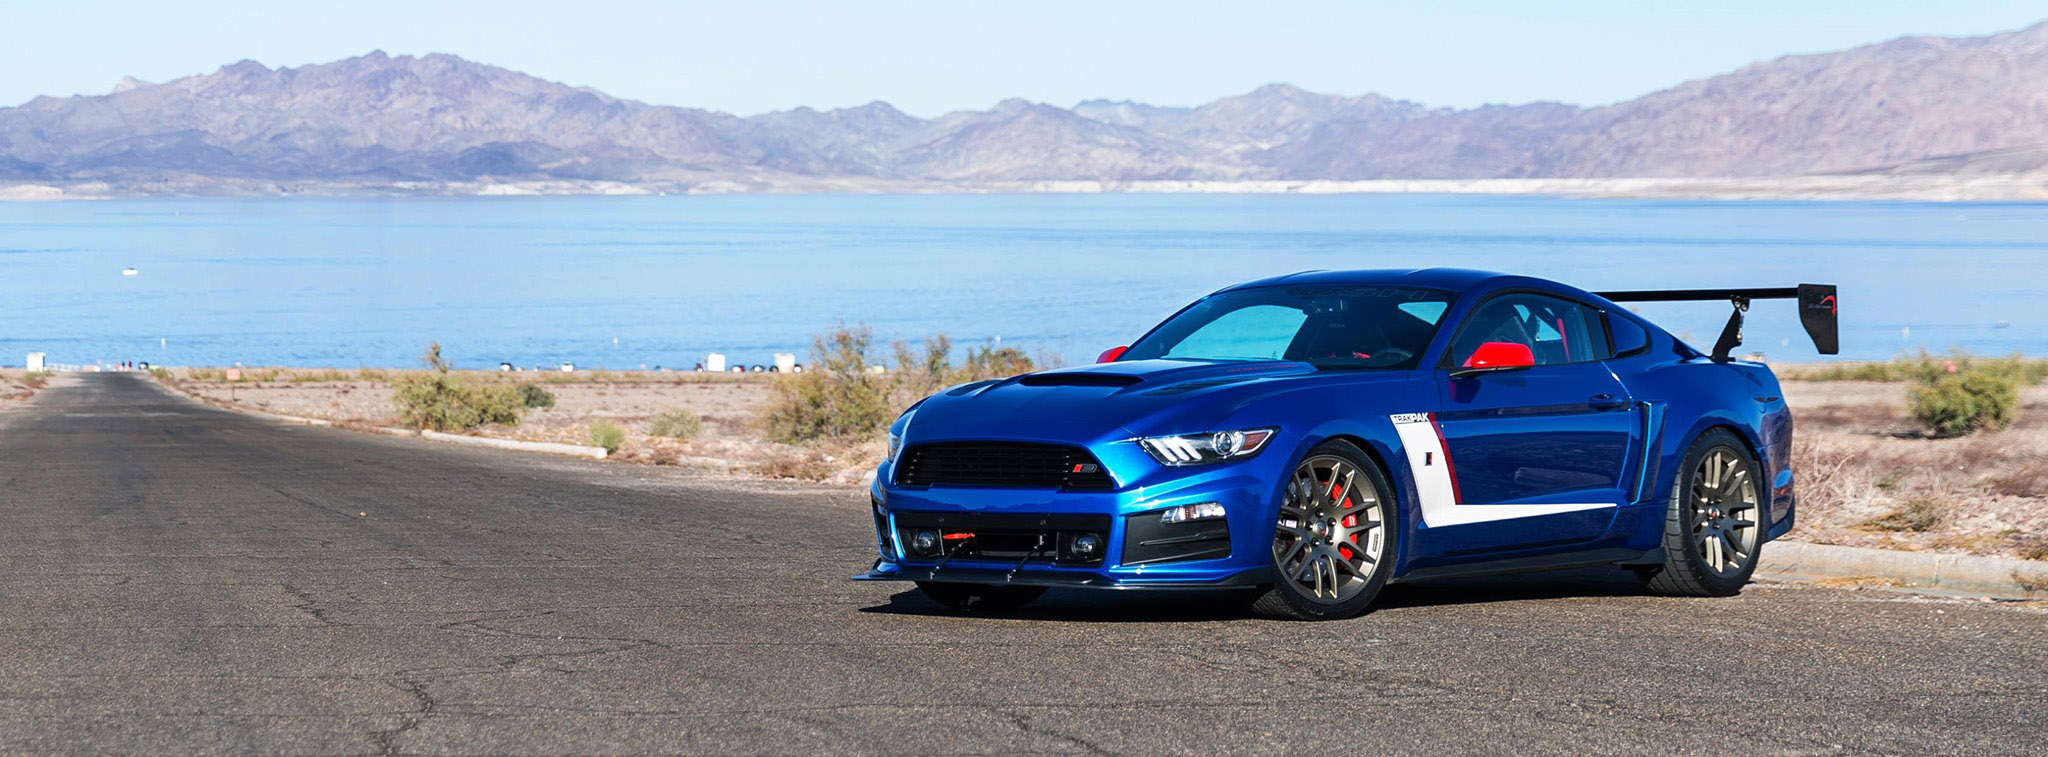 roush mustang stage 3 produces 670 horsepower. Black Bedroom Furniture Sets. Home Design Ideas